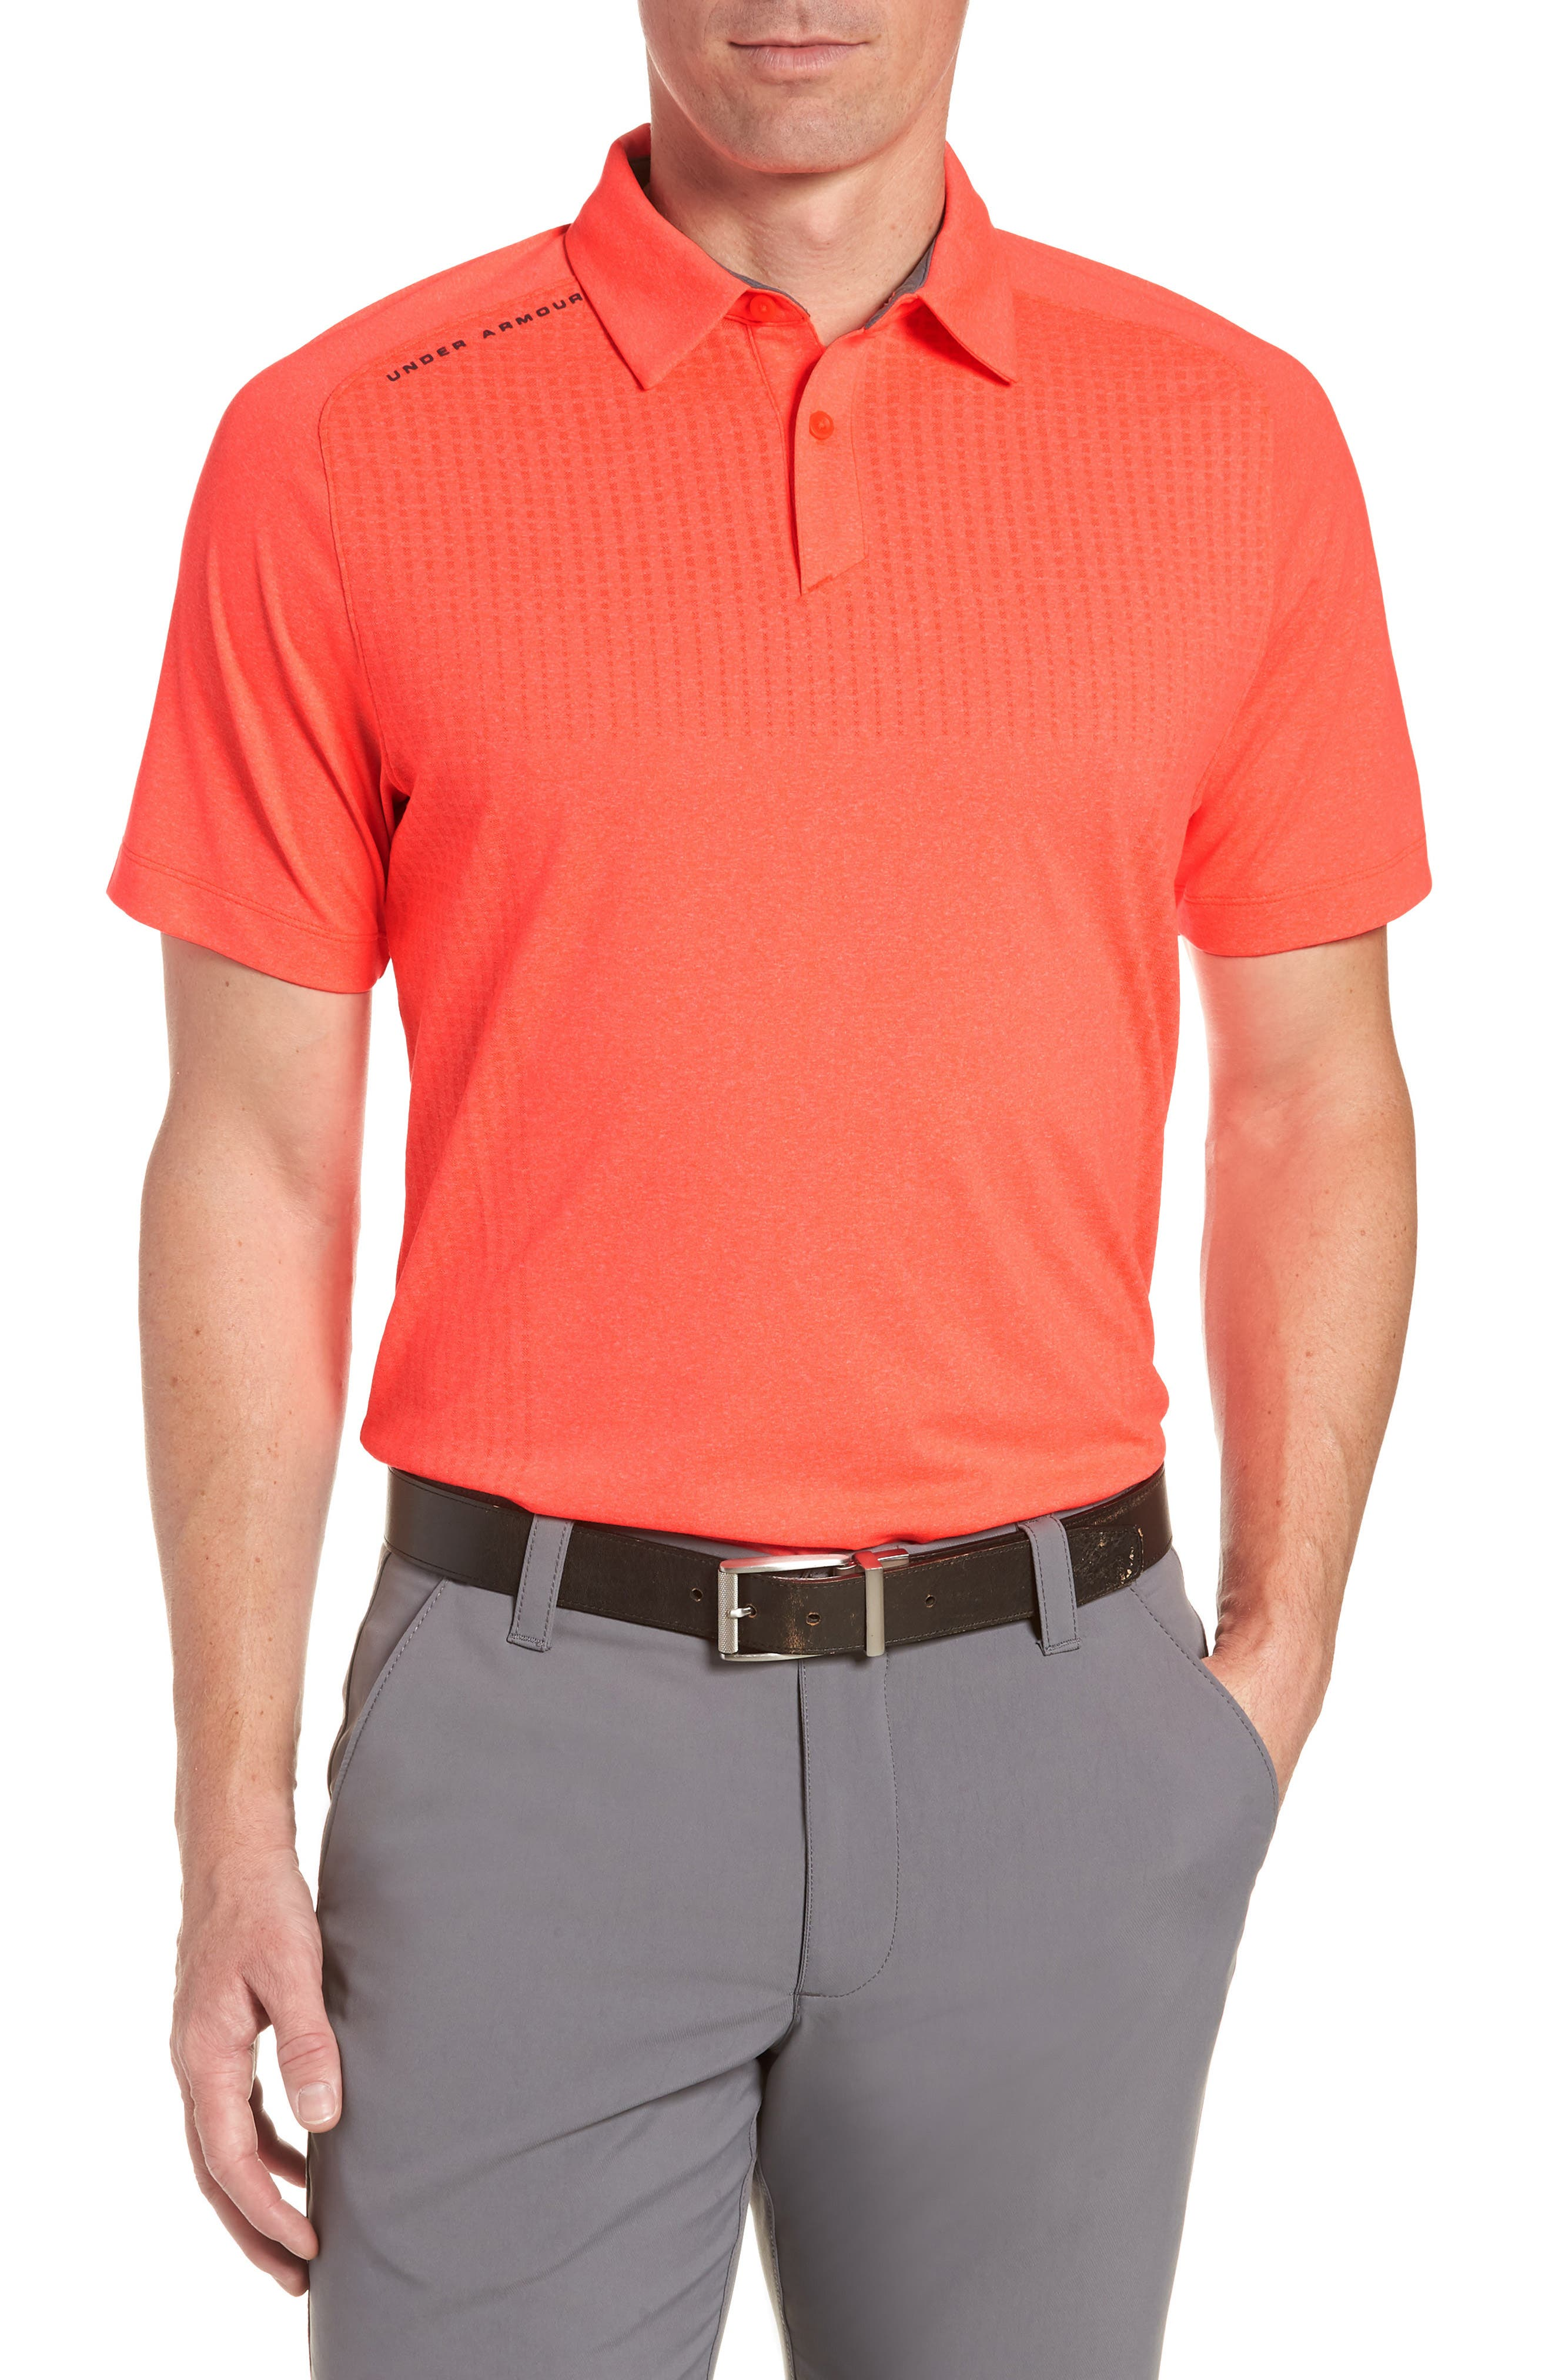 Threadborne Outer Glow Regular Fit Polo Shirt,                         Main,                         color, NEON CORAL LIGHT/ HEATHER